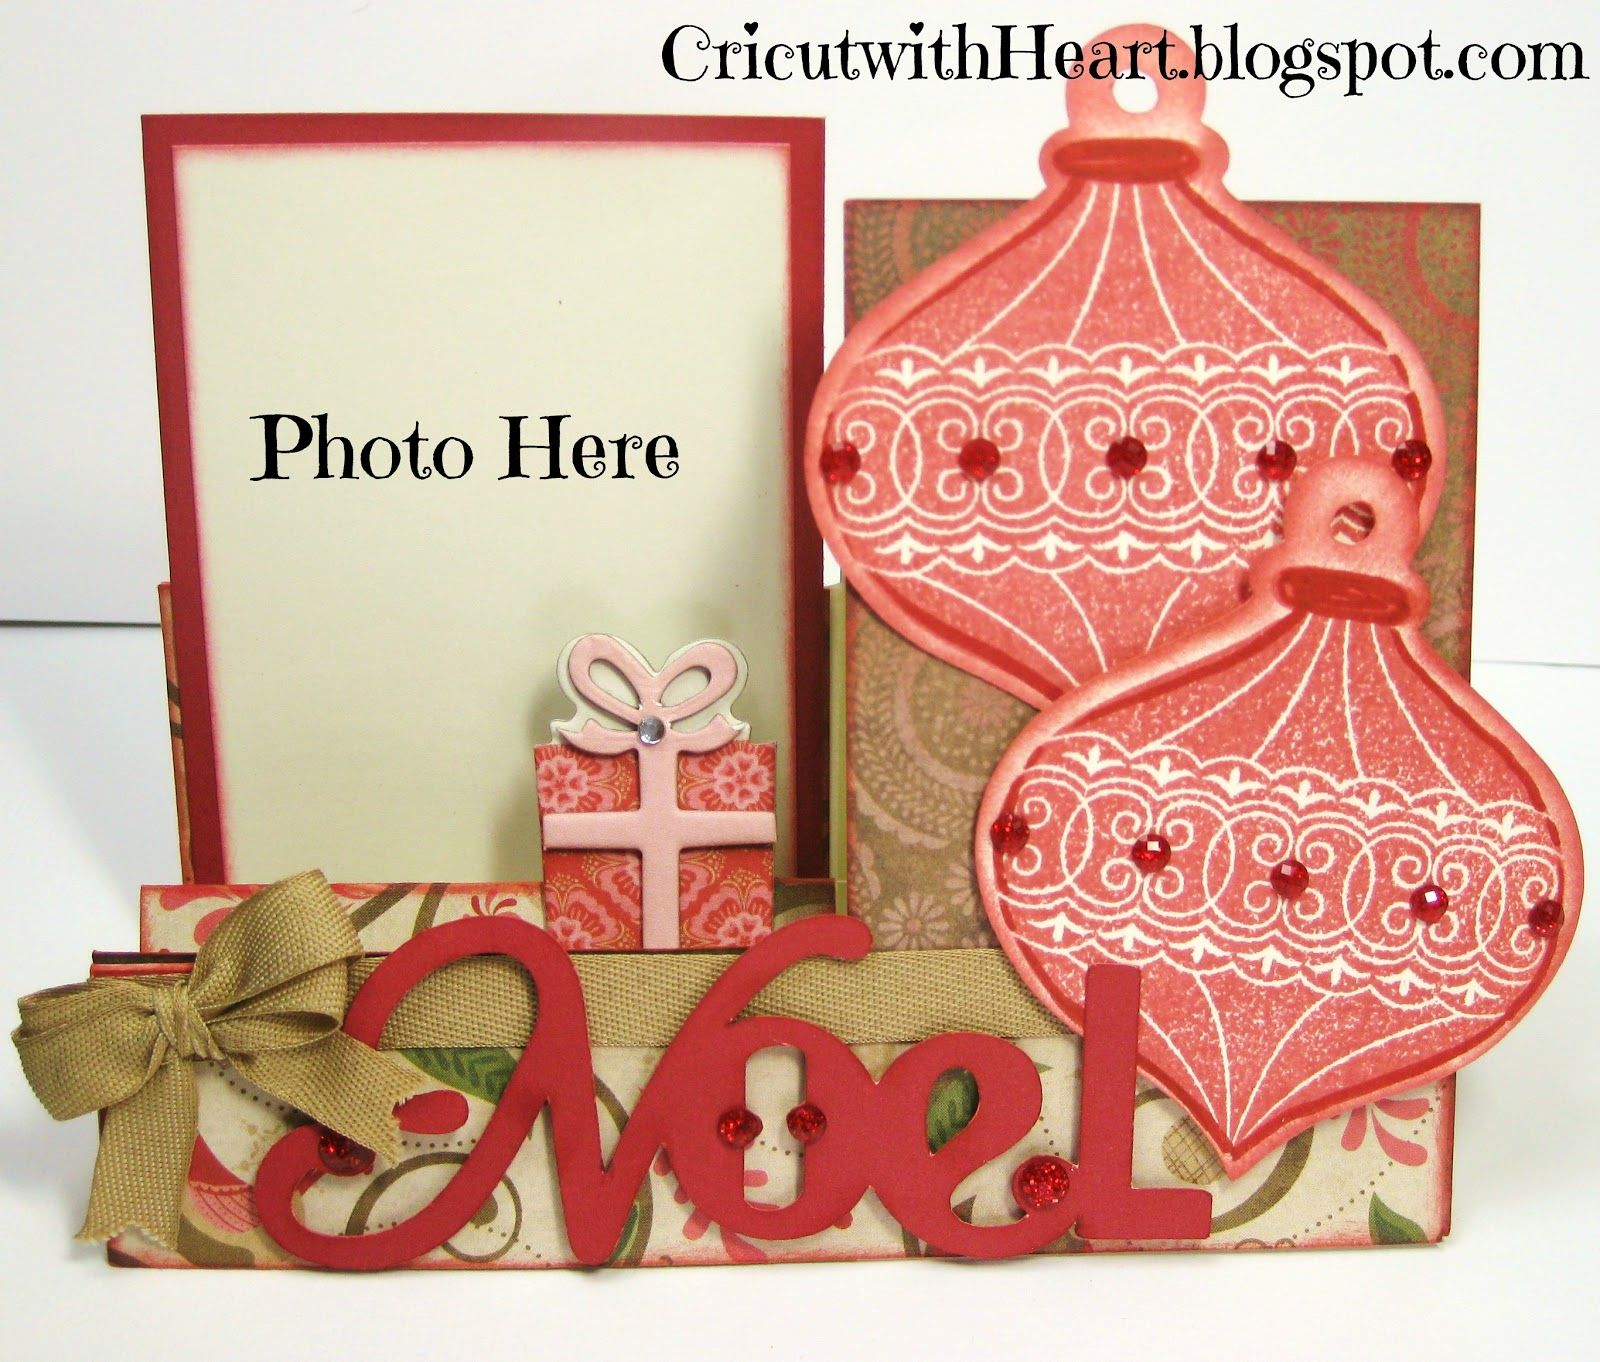 Cricut with Heart: Photo Step Card Including scoring instructions